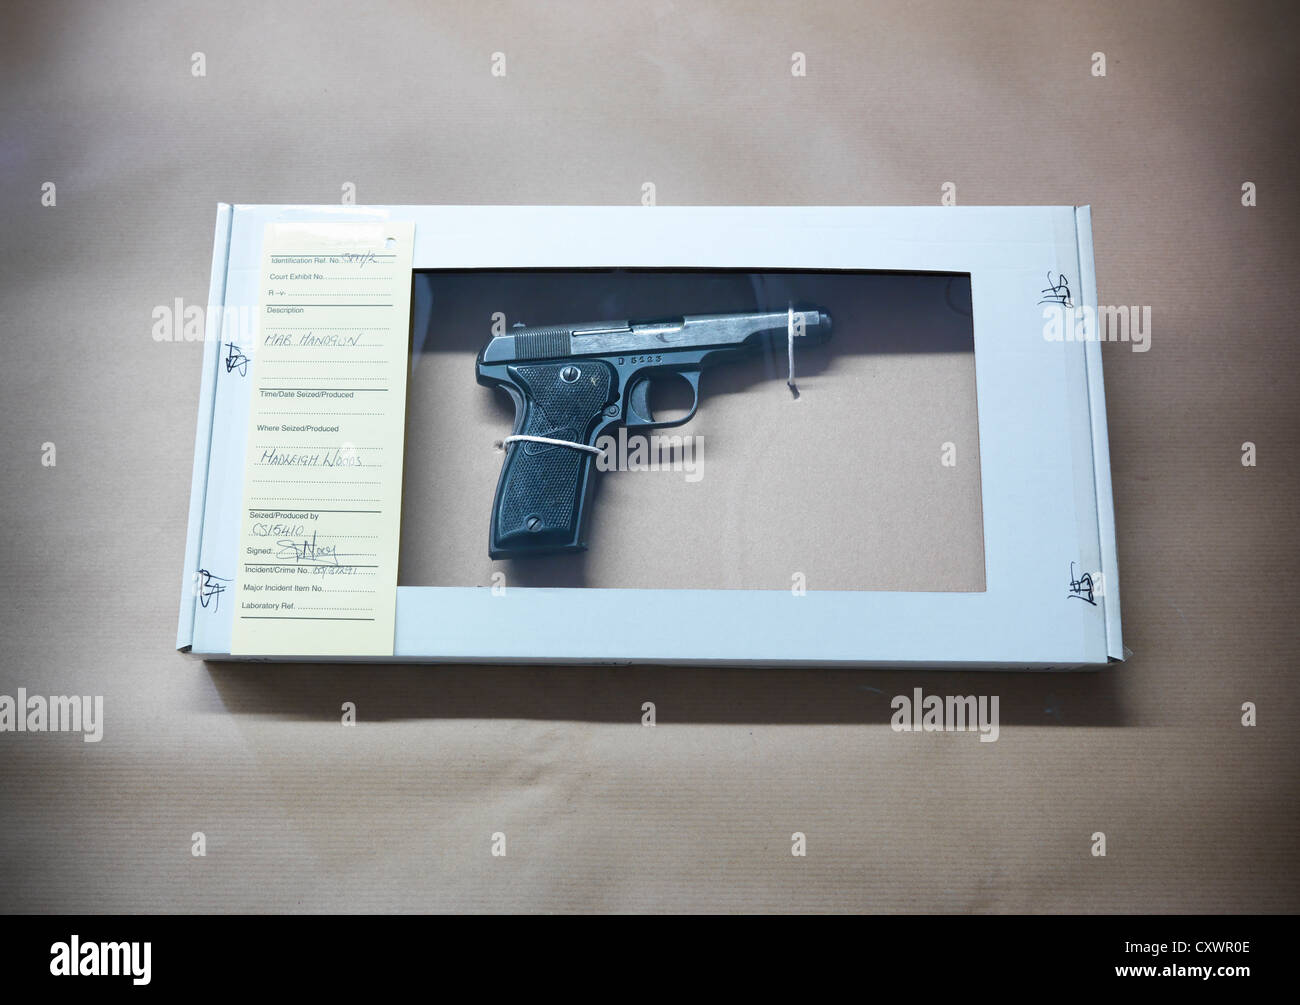 Gun in forensic biohazard box - Stock Image